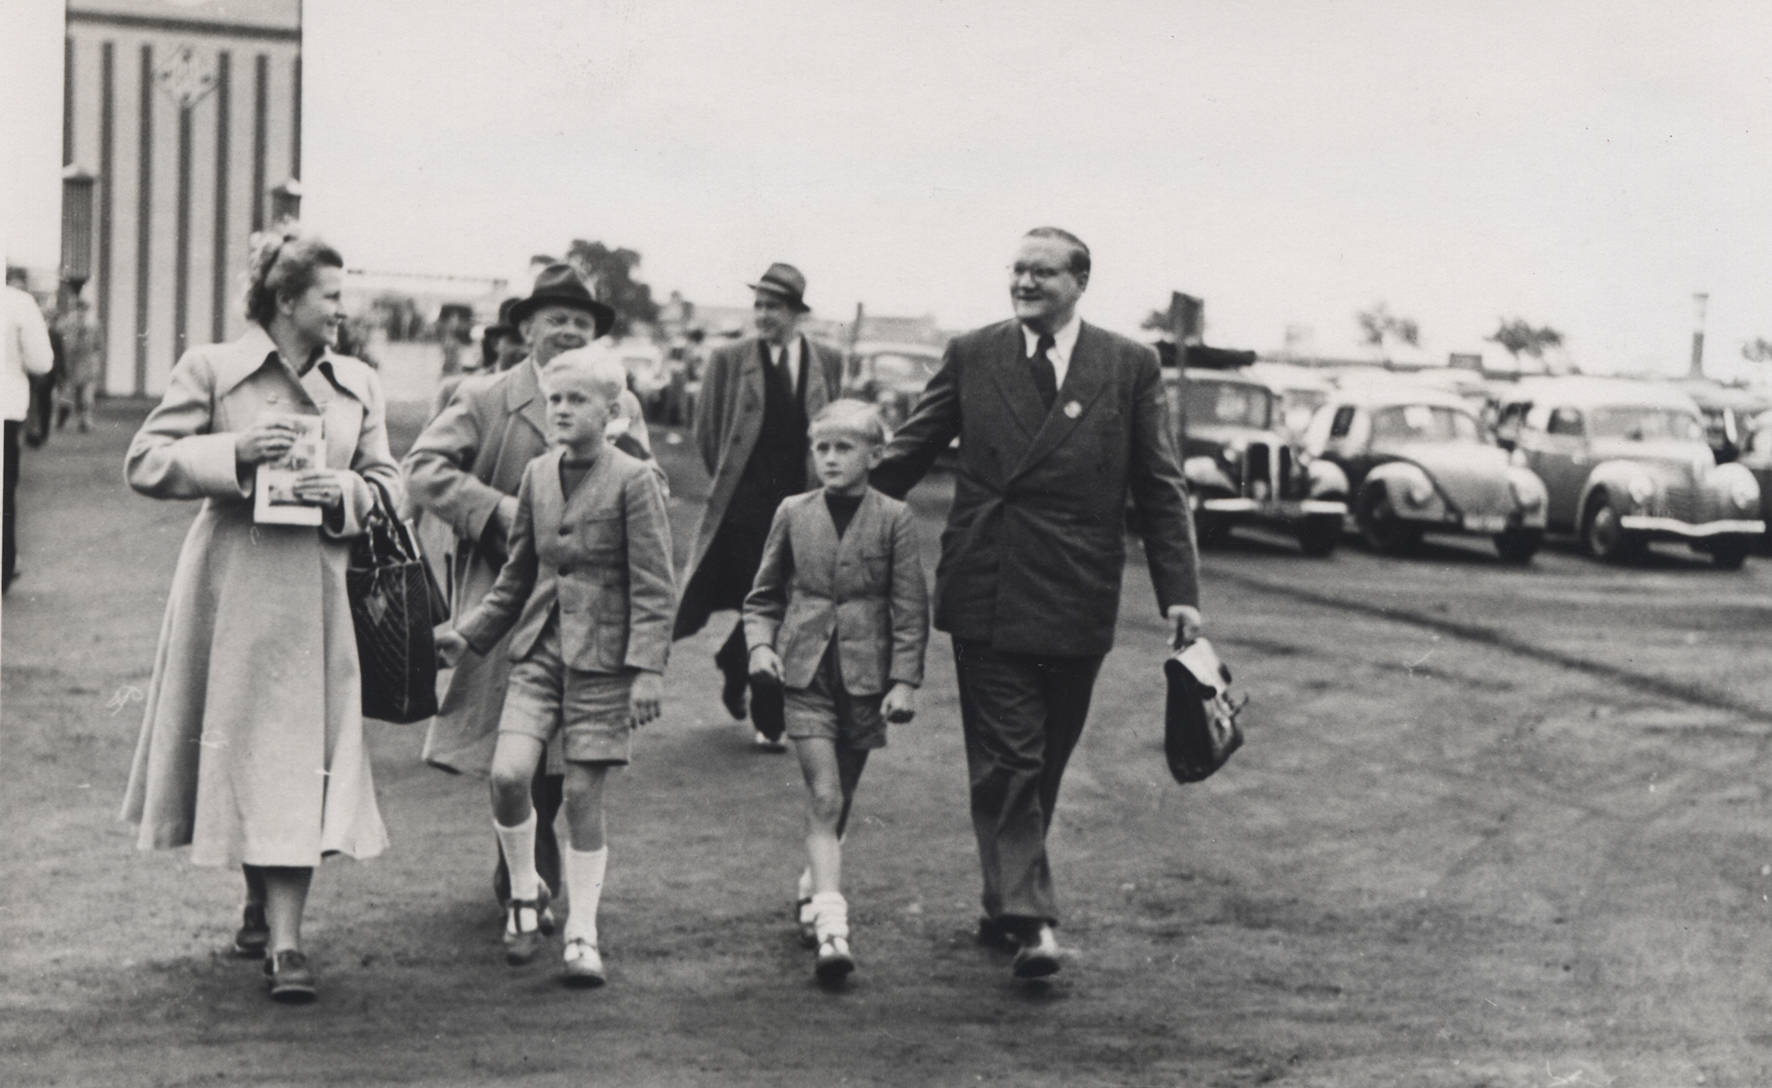 Familie Harting mit Söhnen Hannover Messe 1950